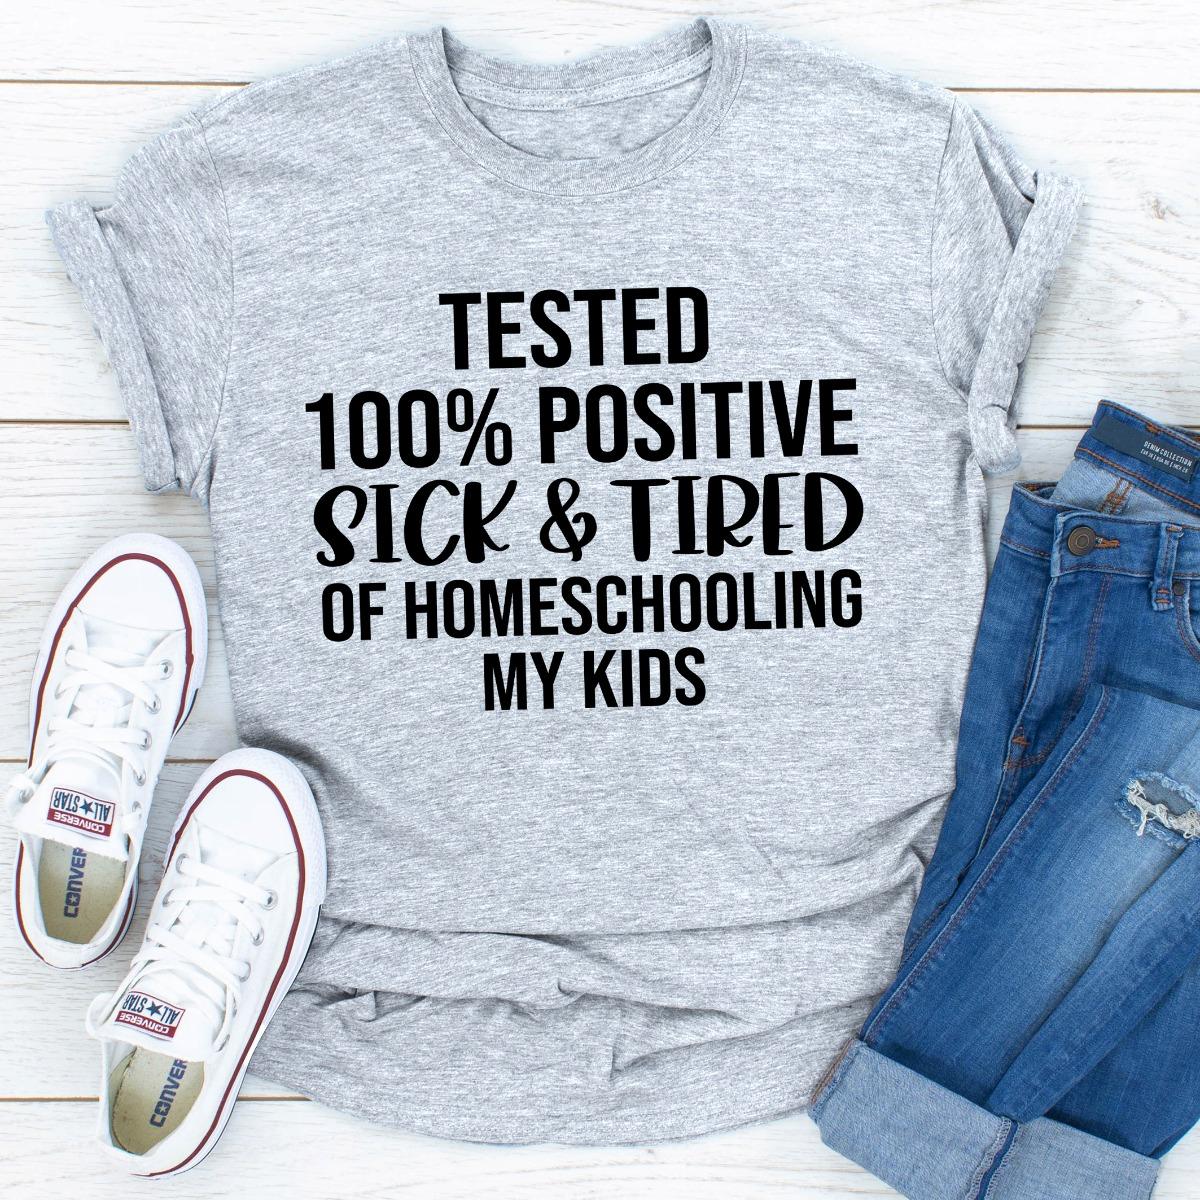 Tested 100% Positive Sick & Tired Of Homeschooling My Kids